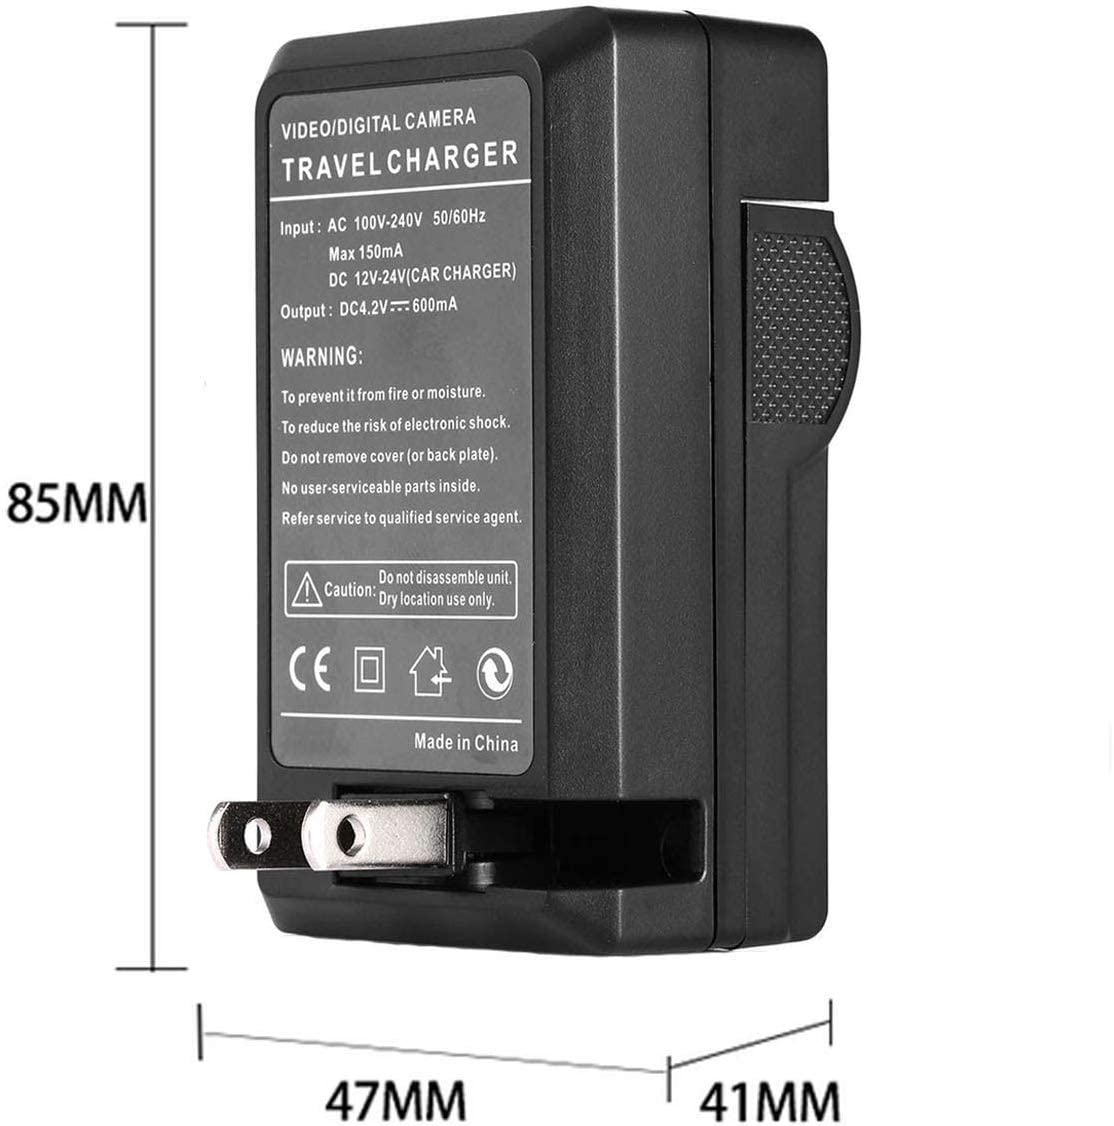 HDR-CX480E LCD USB Battery Charger for Sony HDR-CX400E HDR-CX410VE HDR-CX450E HDR-CX485E Handycam Camcorder HDR-CX430VE DR-CX455E HDR-CX420E